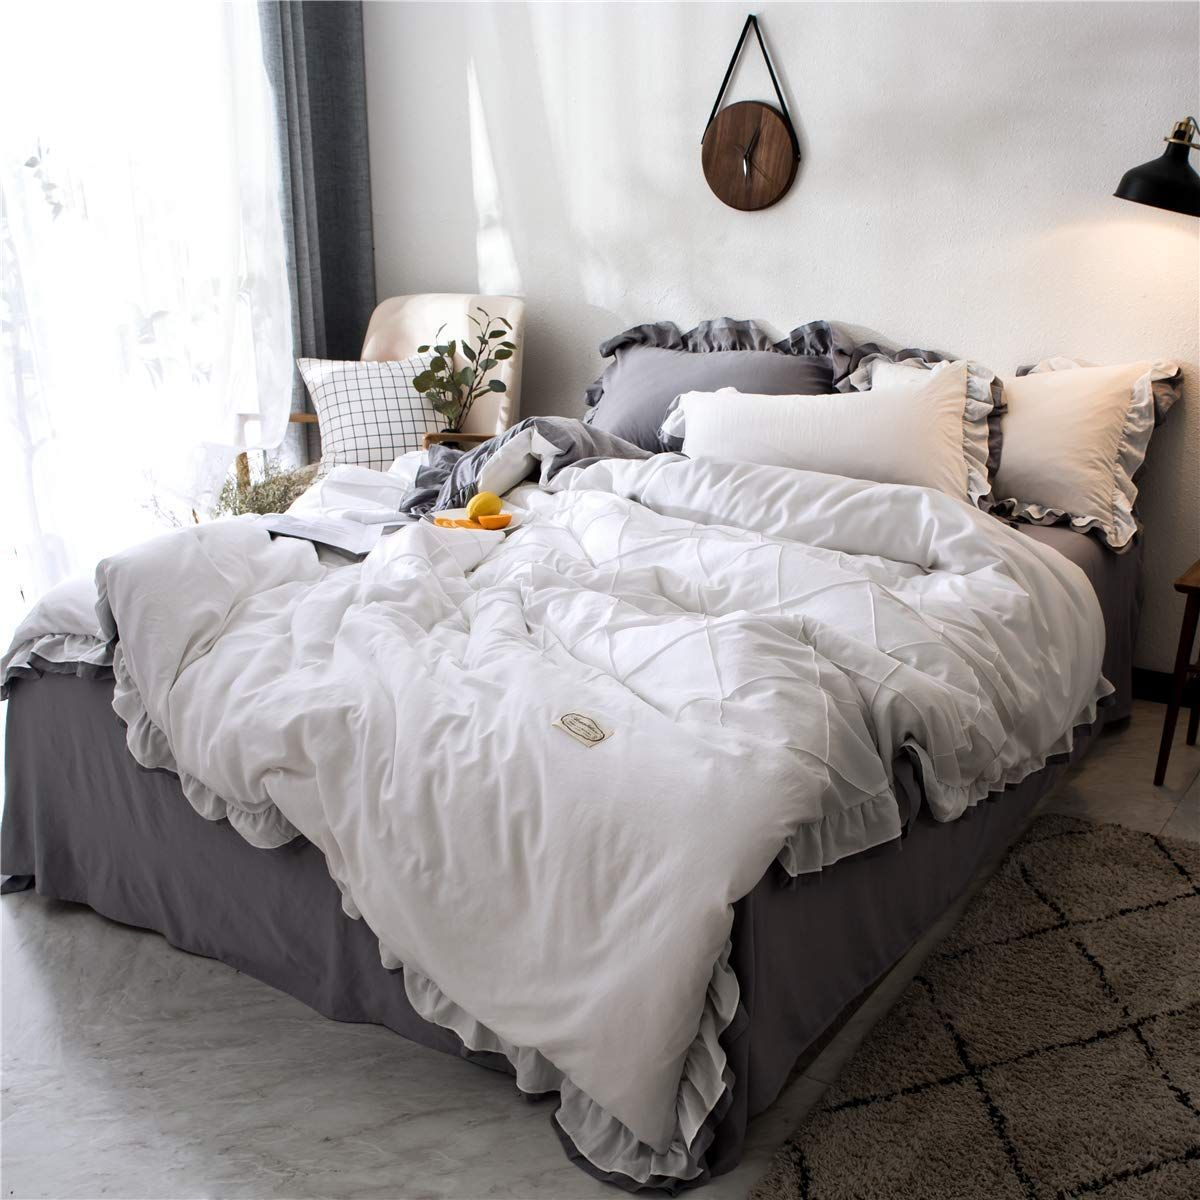 Farmhouse Duvet Covers Rustic Duvet Covers Farmhouse Goals In 2020 Farmhouse Bedding Sets Farmhouse Bedding Rustic Duvet Cover